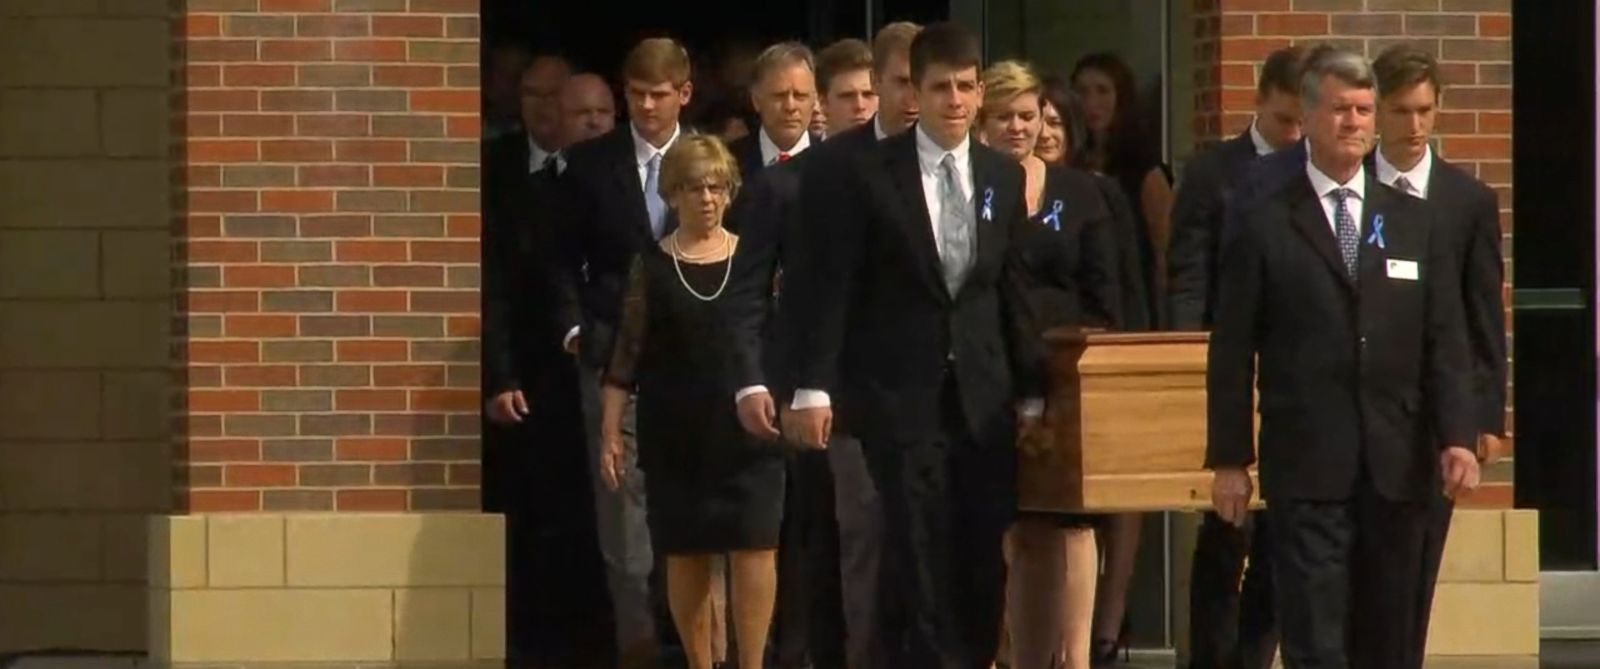 VIDEO: Otto Warmbier, an American college student who died just days after North Korea released him from prison while he was in a coma, will be laid to rest in his hometown of Cincinnati on Thursday.